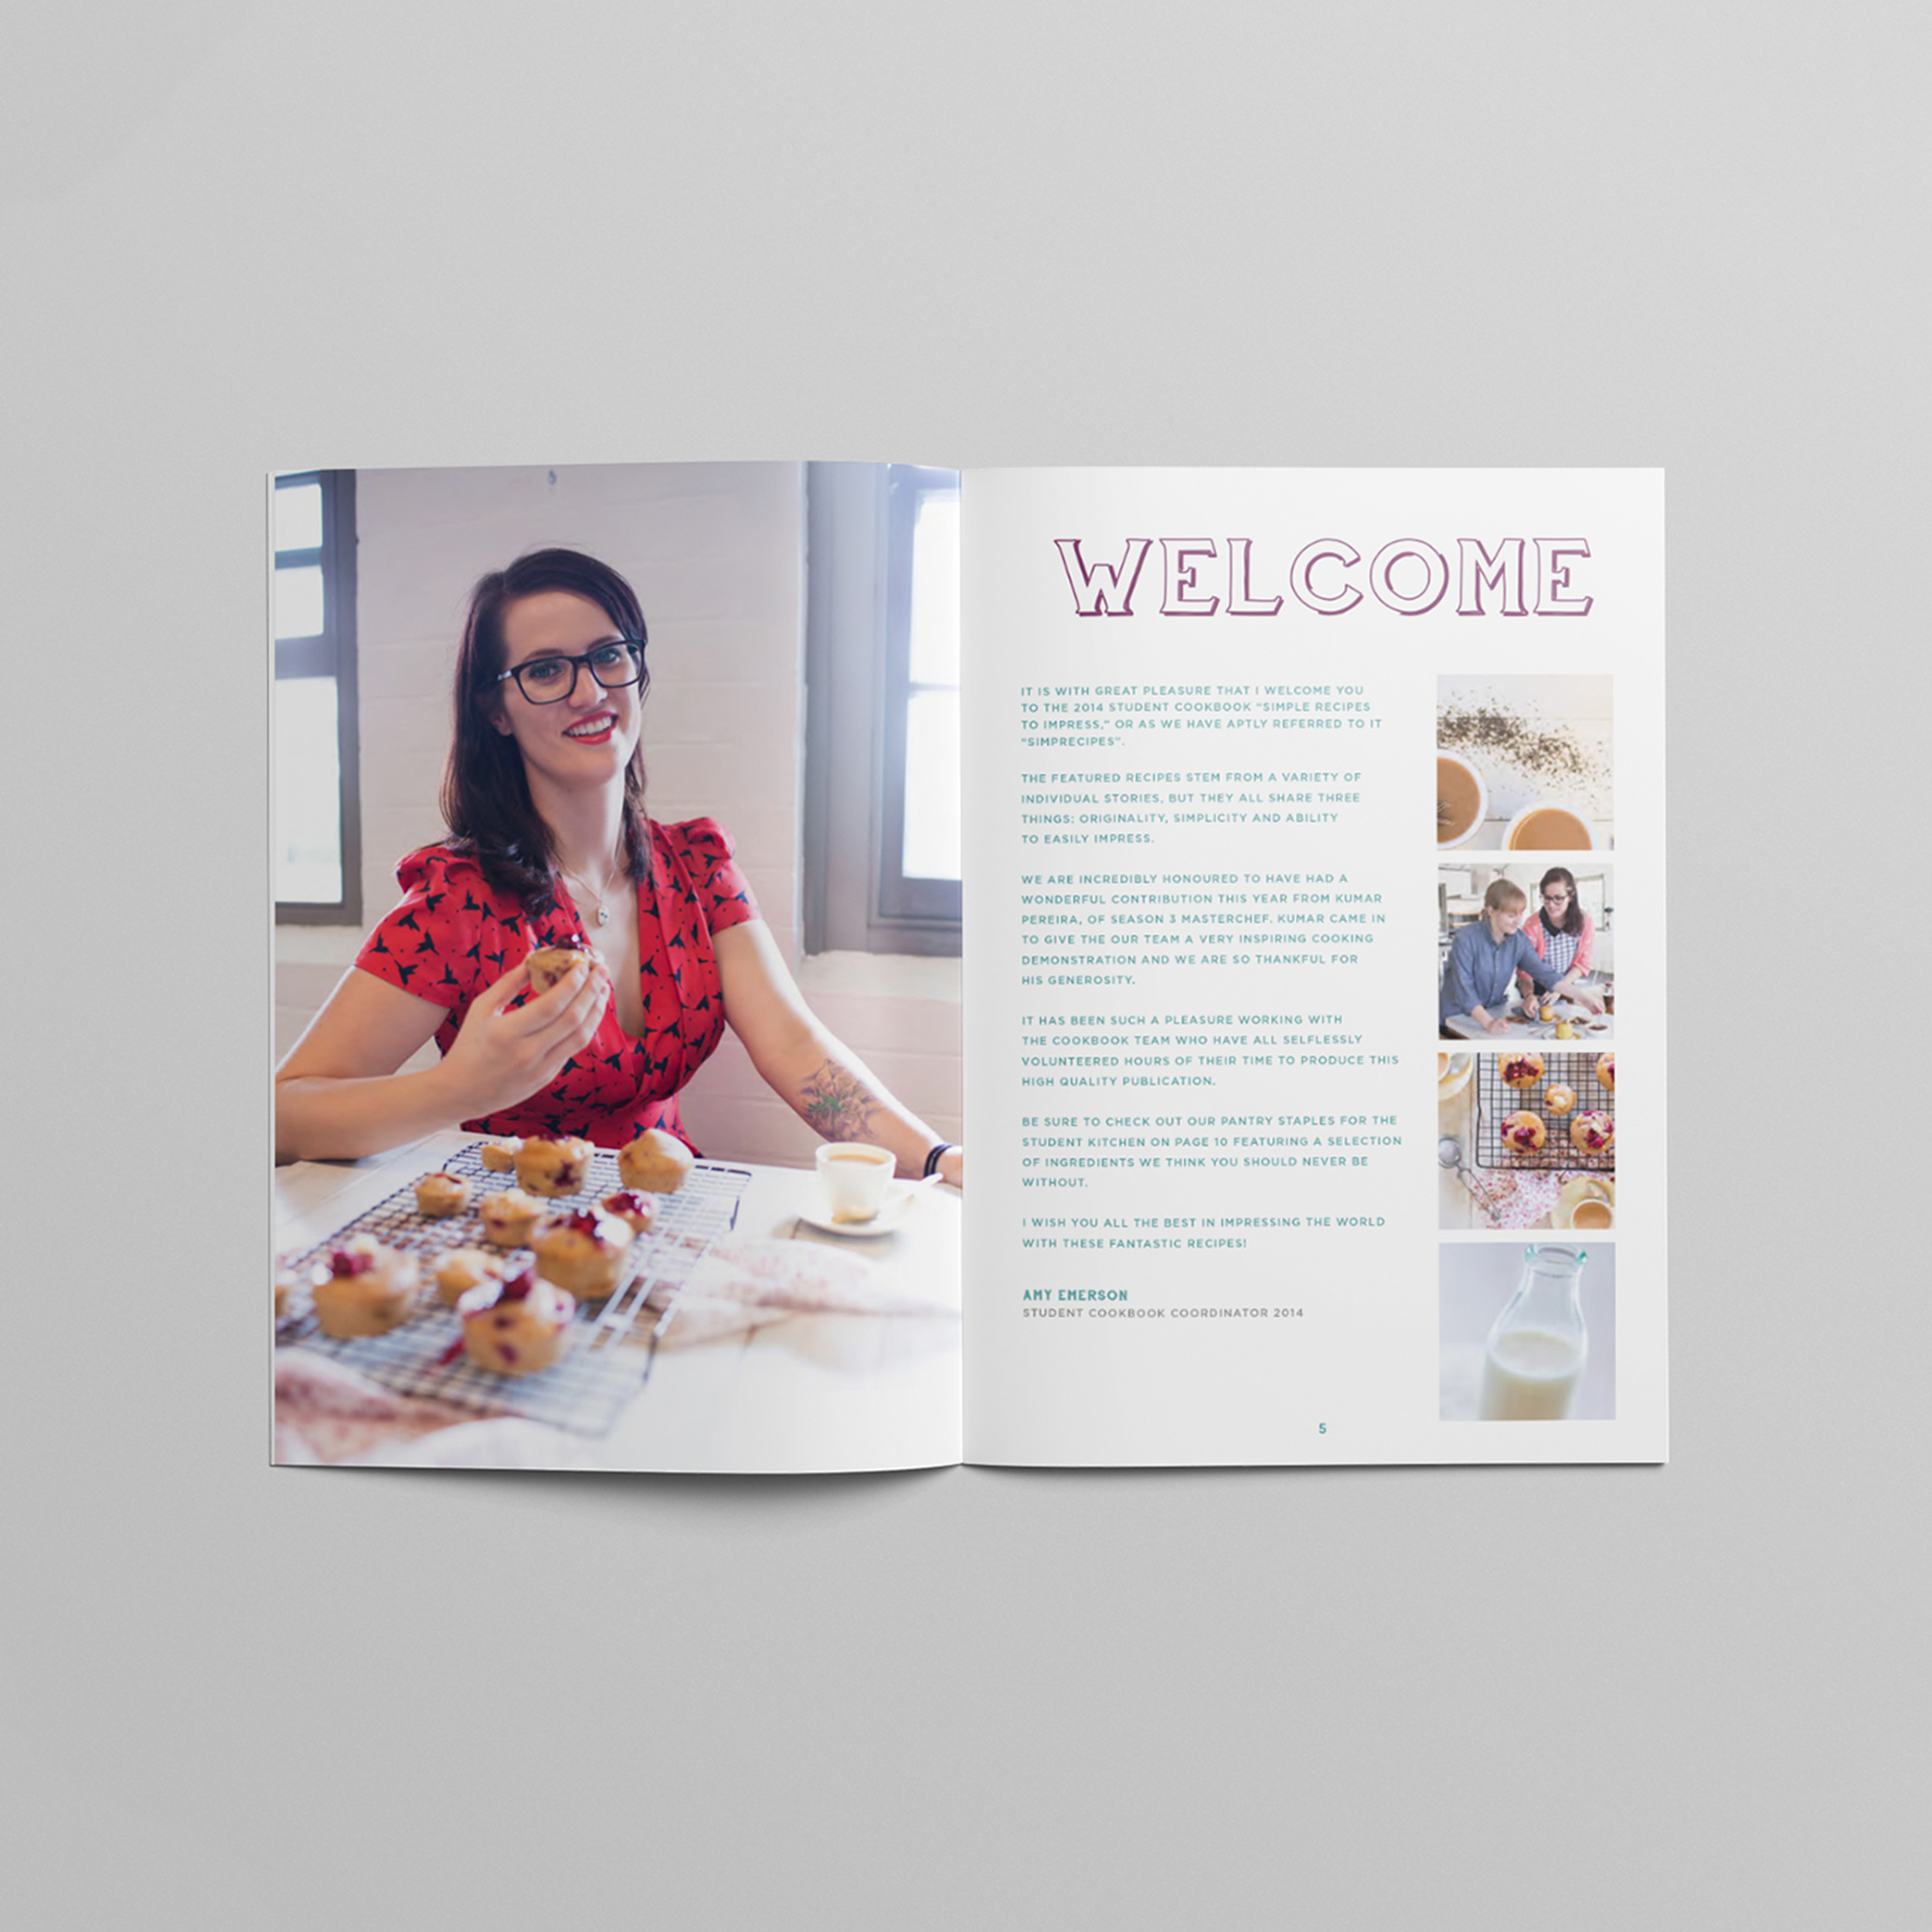 Arc UNSW Student Cookbook